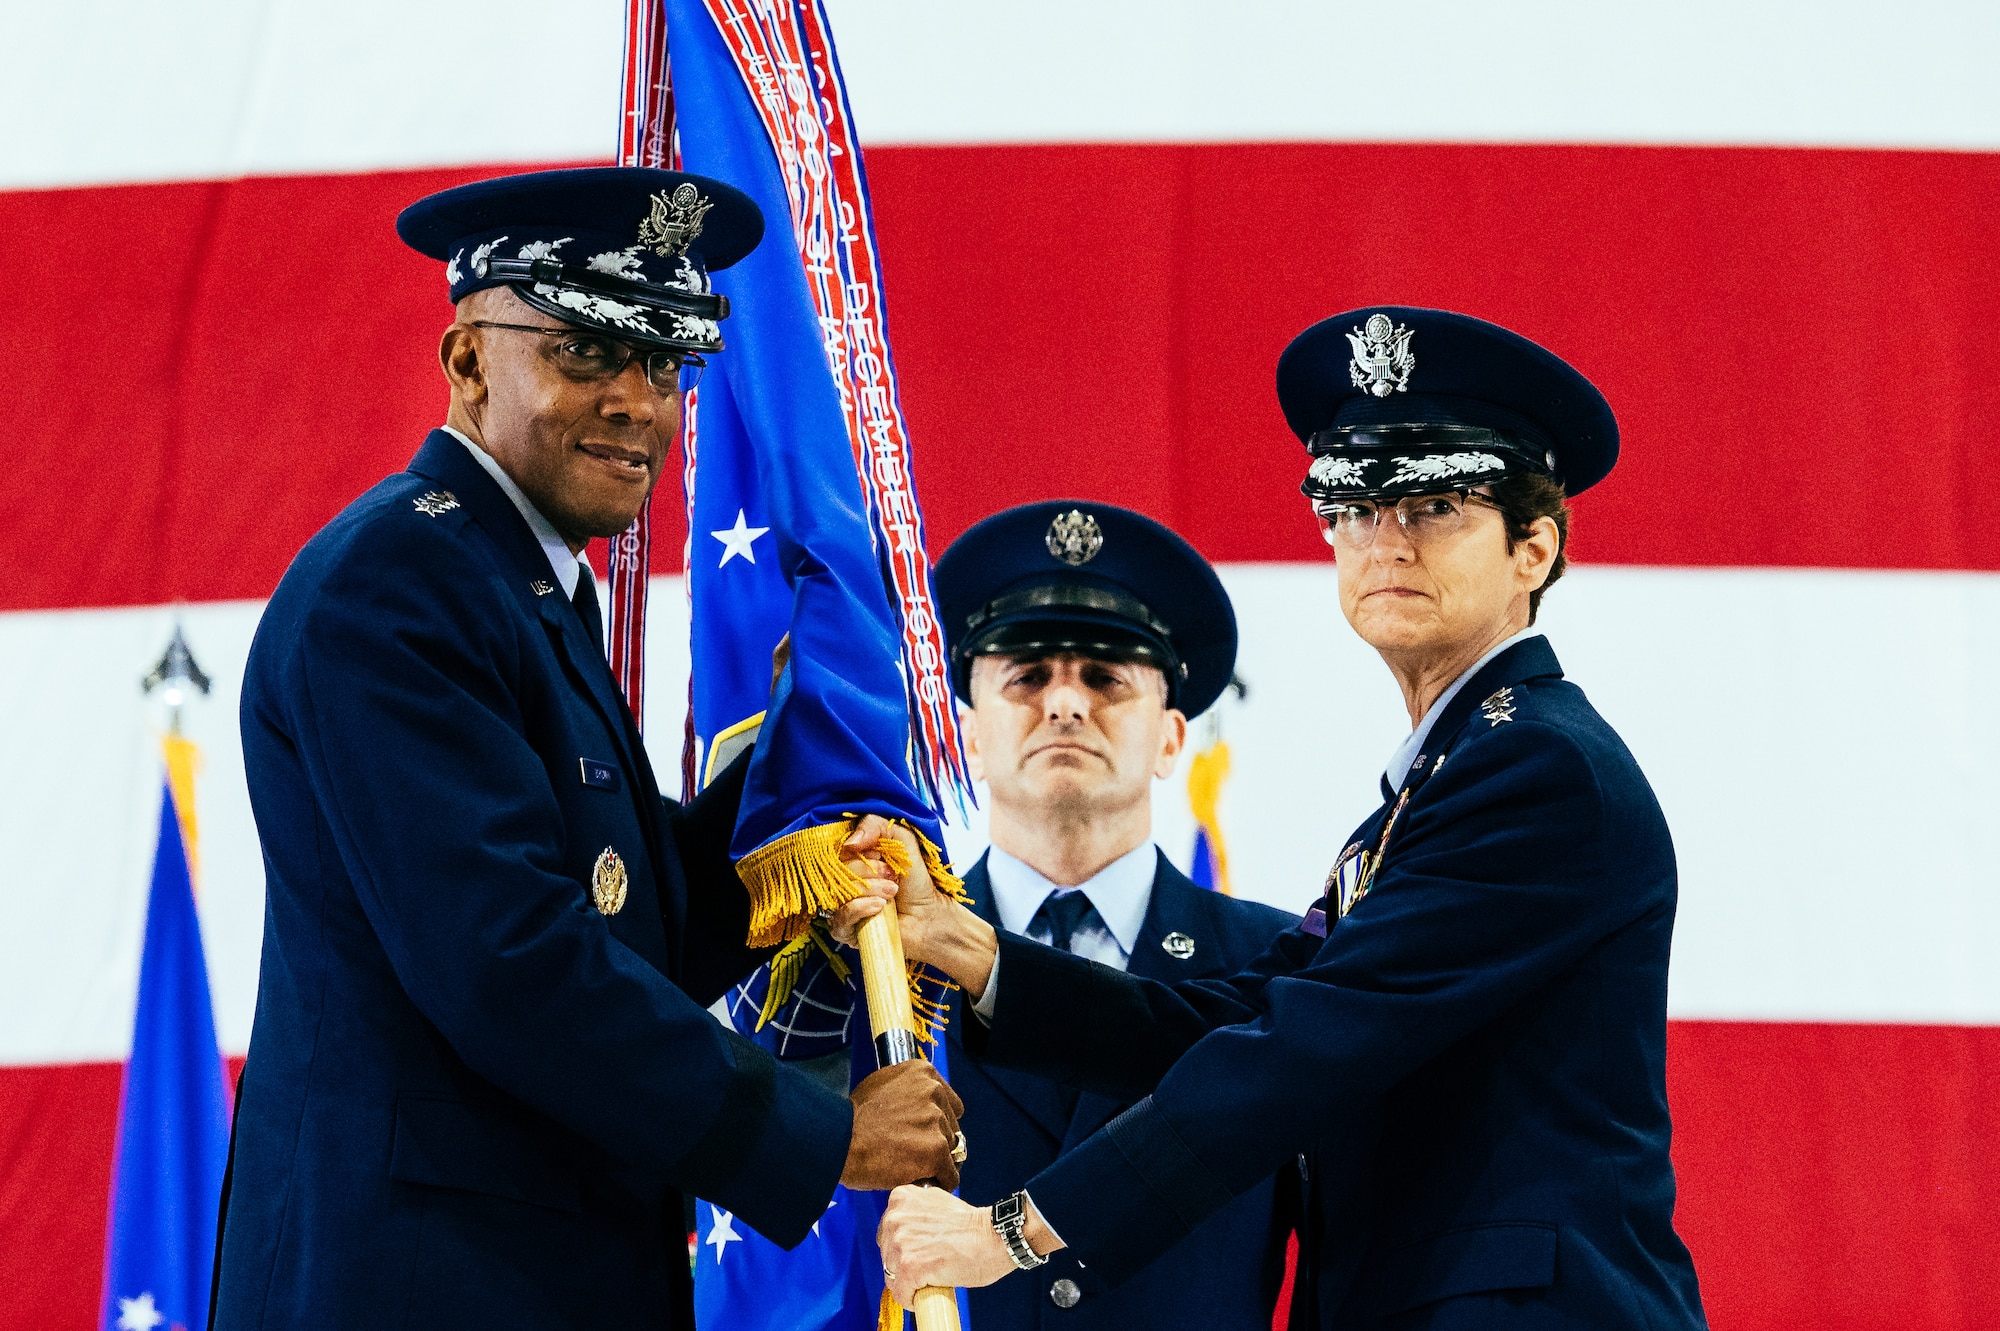 Gen. Jacqueline D. Van Ovost, right, outgoing Air Mobility Command commander, relinquishes command to Air Force Chief of Staff Gen. CQ Brown, Jr., during the AMC change of command ceremony at Scott Air Force Base, Ill., Oct. 5, 2021. AMC provides rapid global mobility and sustainment for America's armed forces.